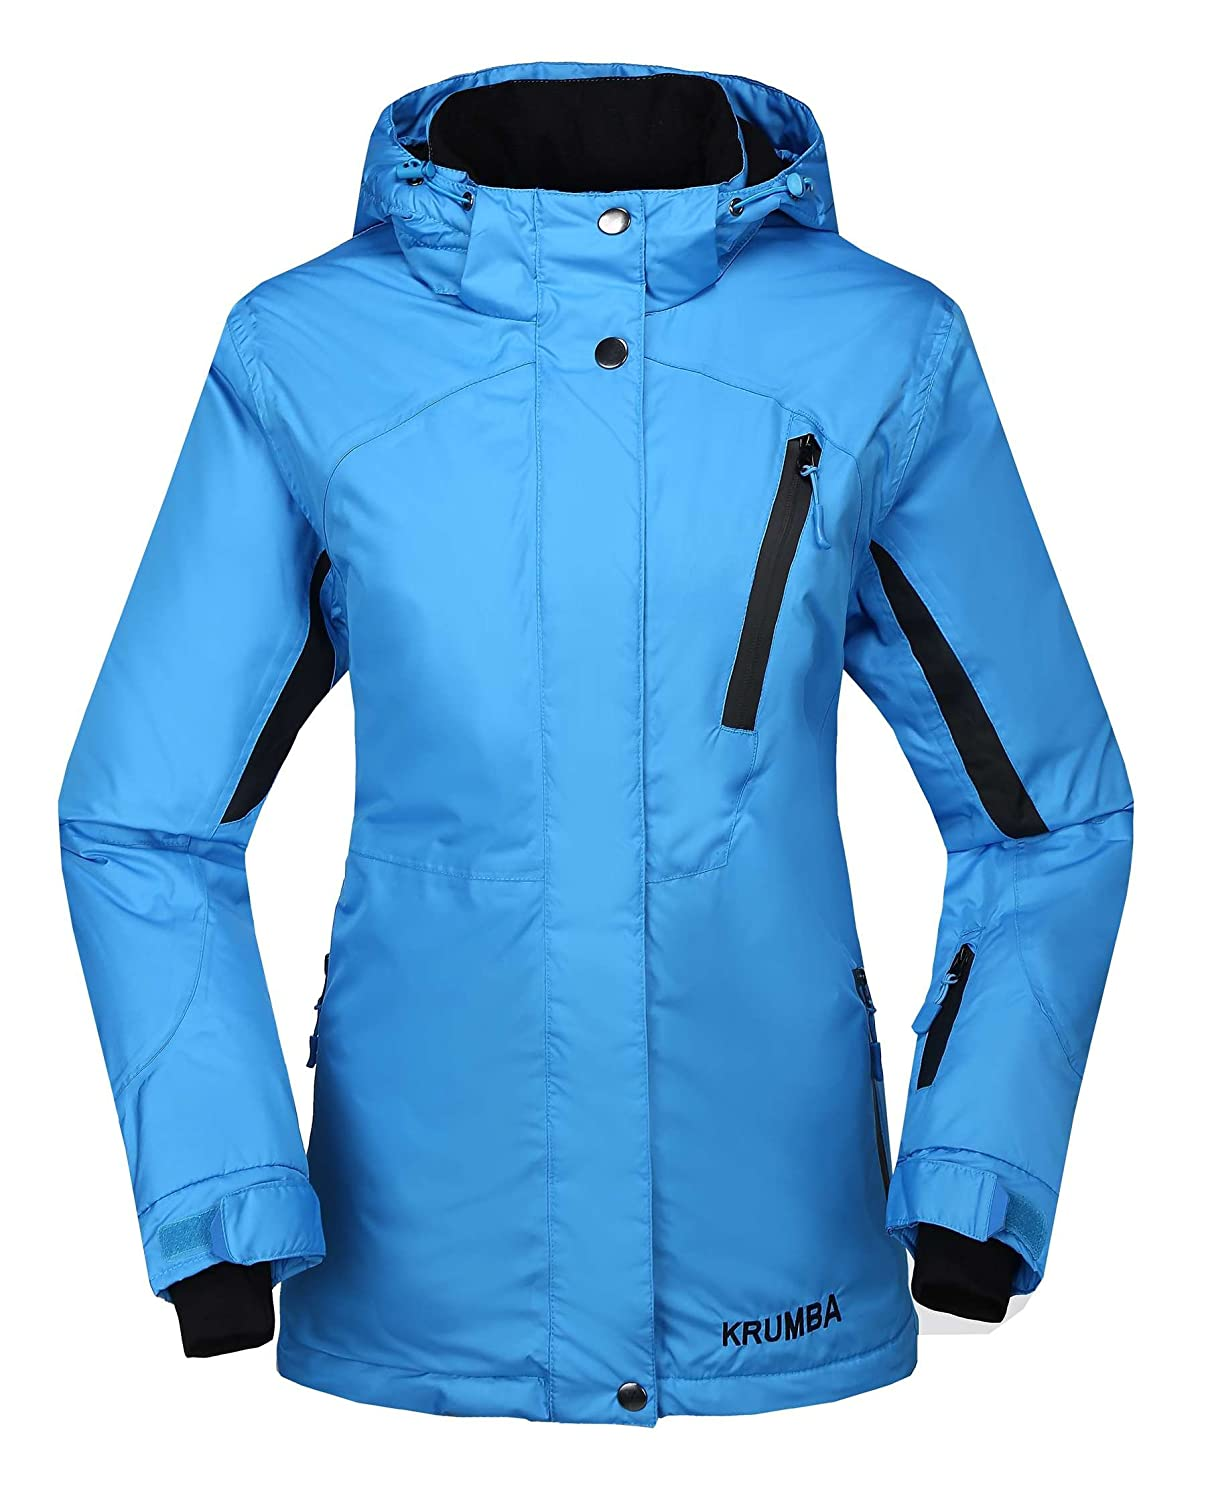 Krumba Women's Sportswear Outdoor Waterproof Windproof Hooded Ski Jacket